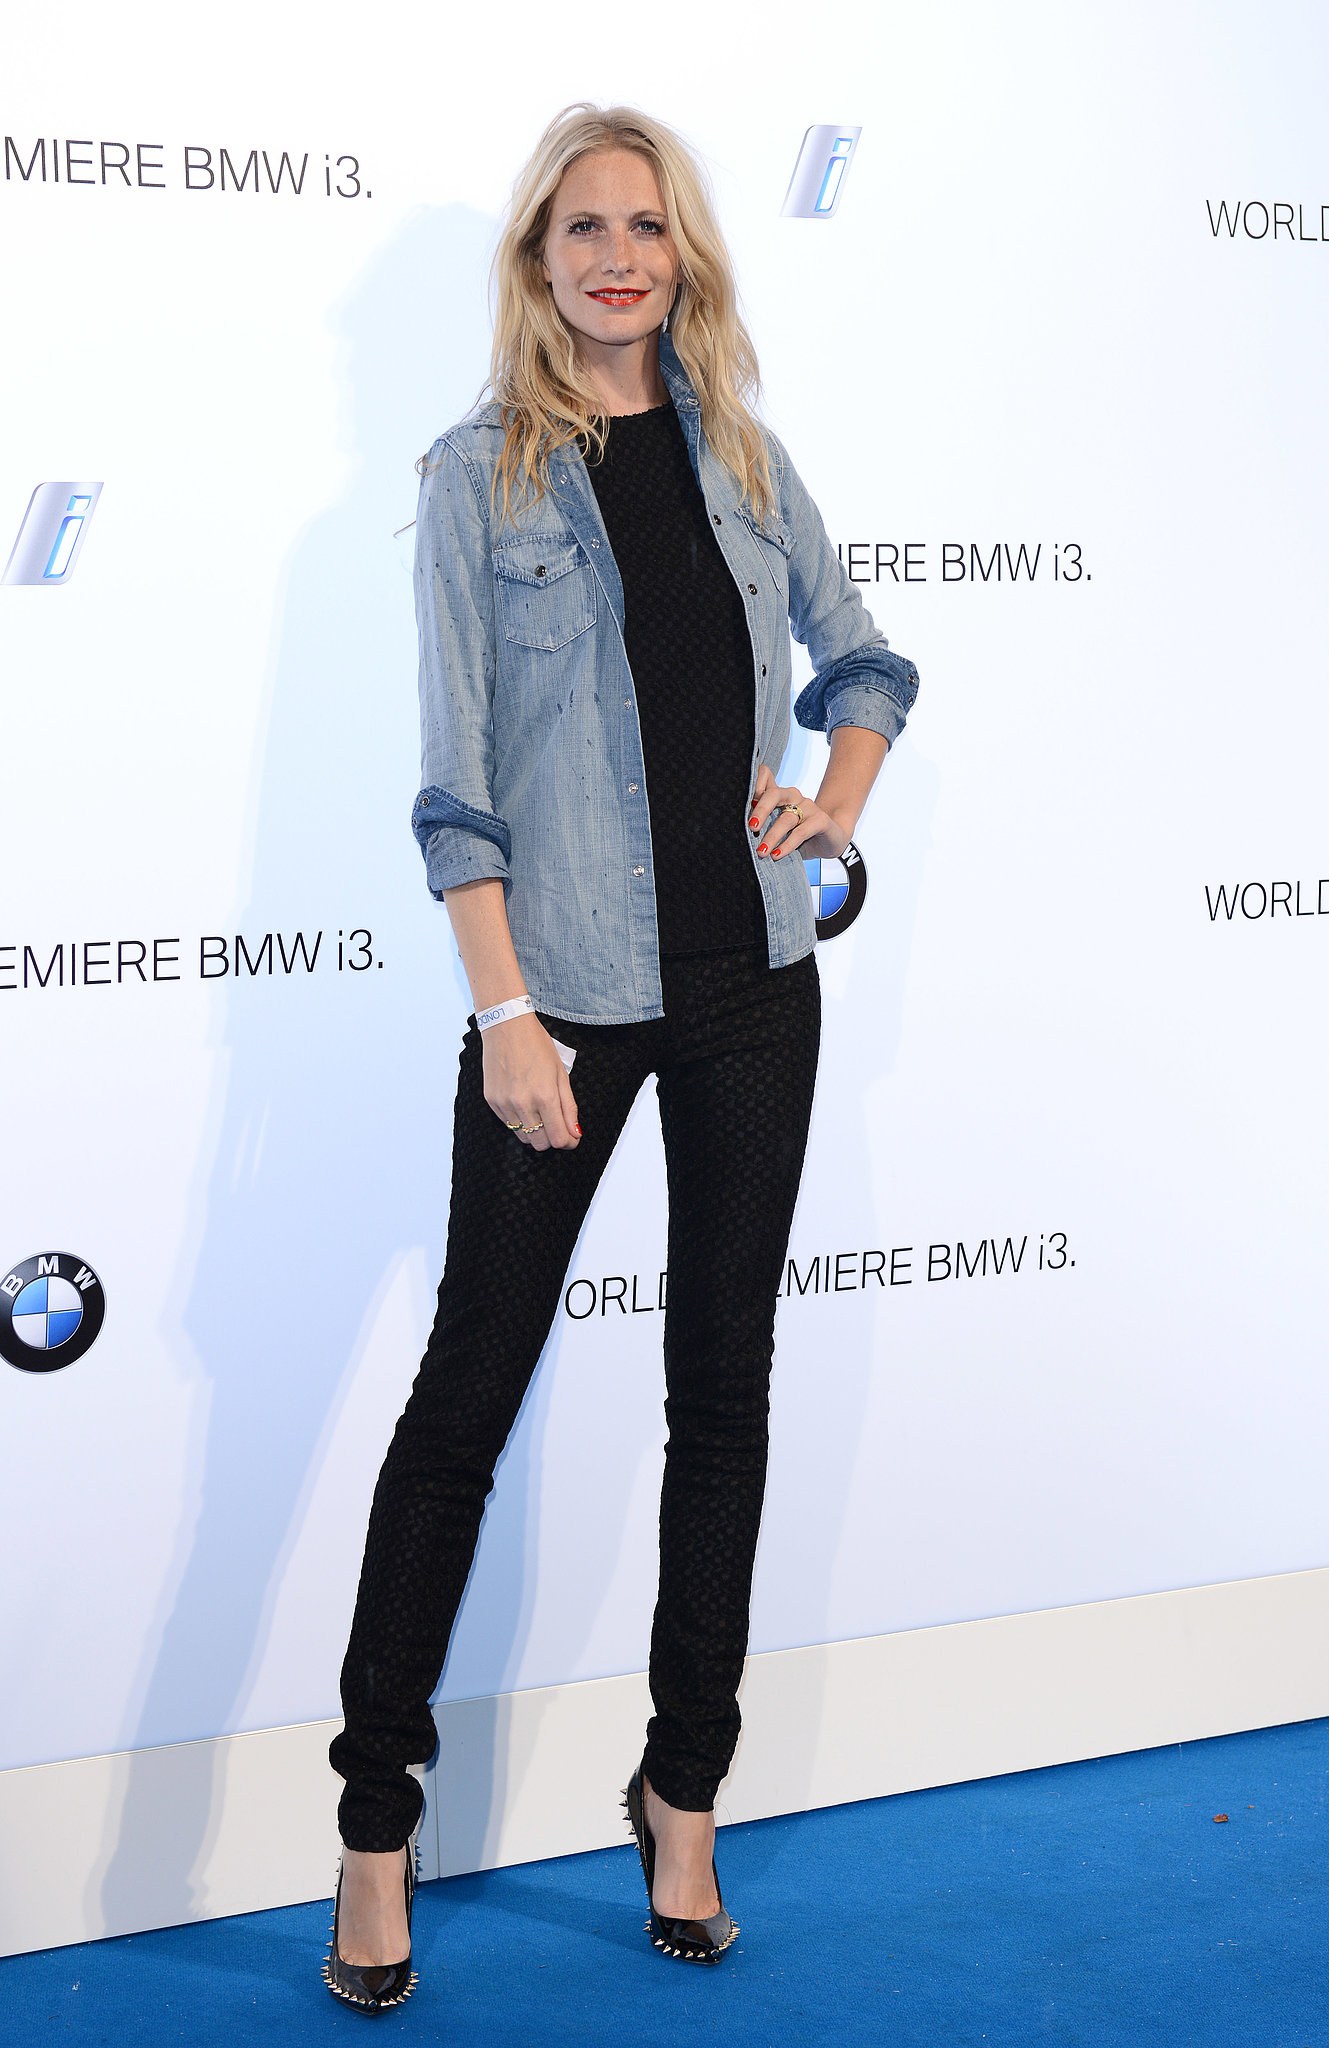 Poppy Delevingne looked cool and casual at the reveal for the BMW i3 in a slim black ensemble that she topped with a denim button-down.